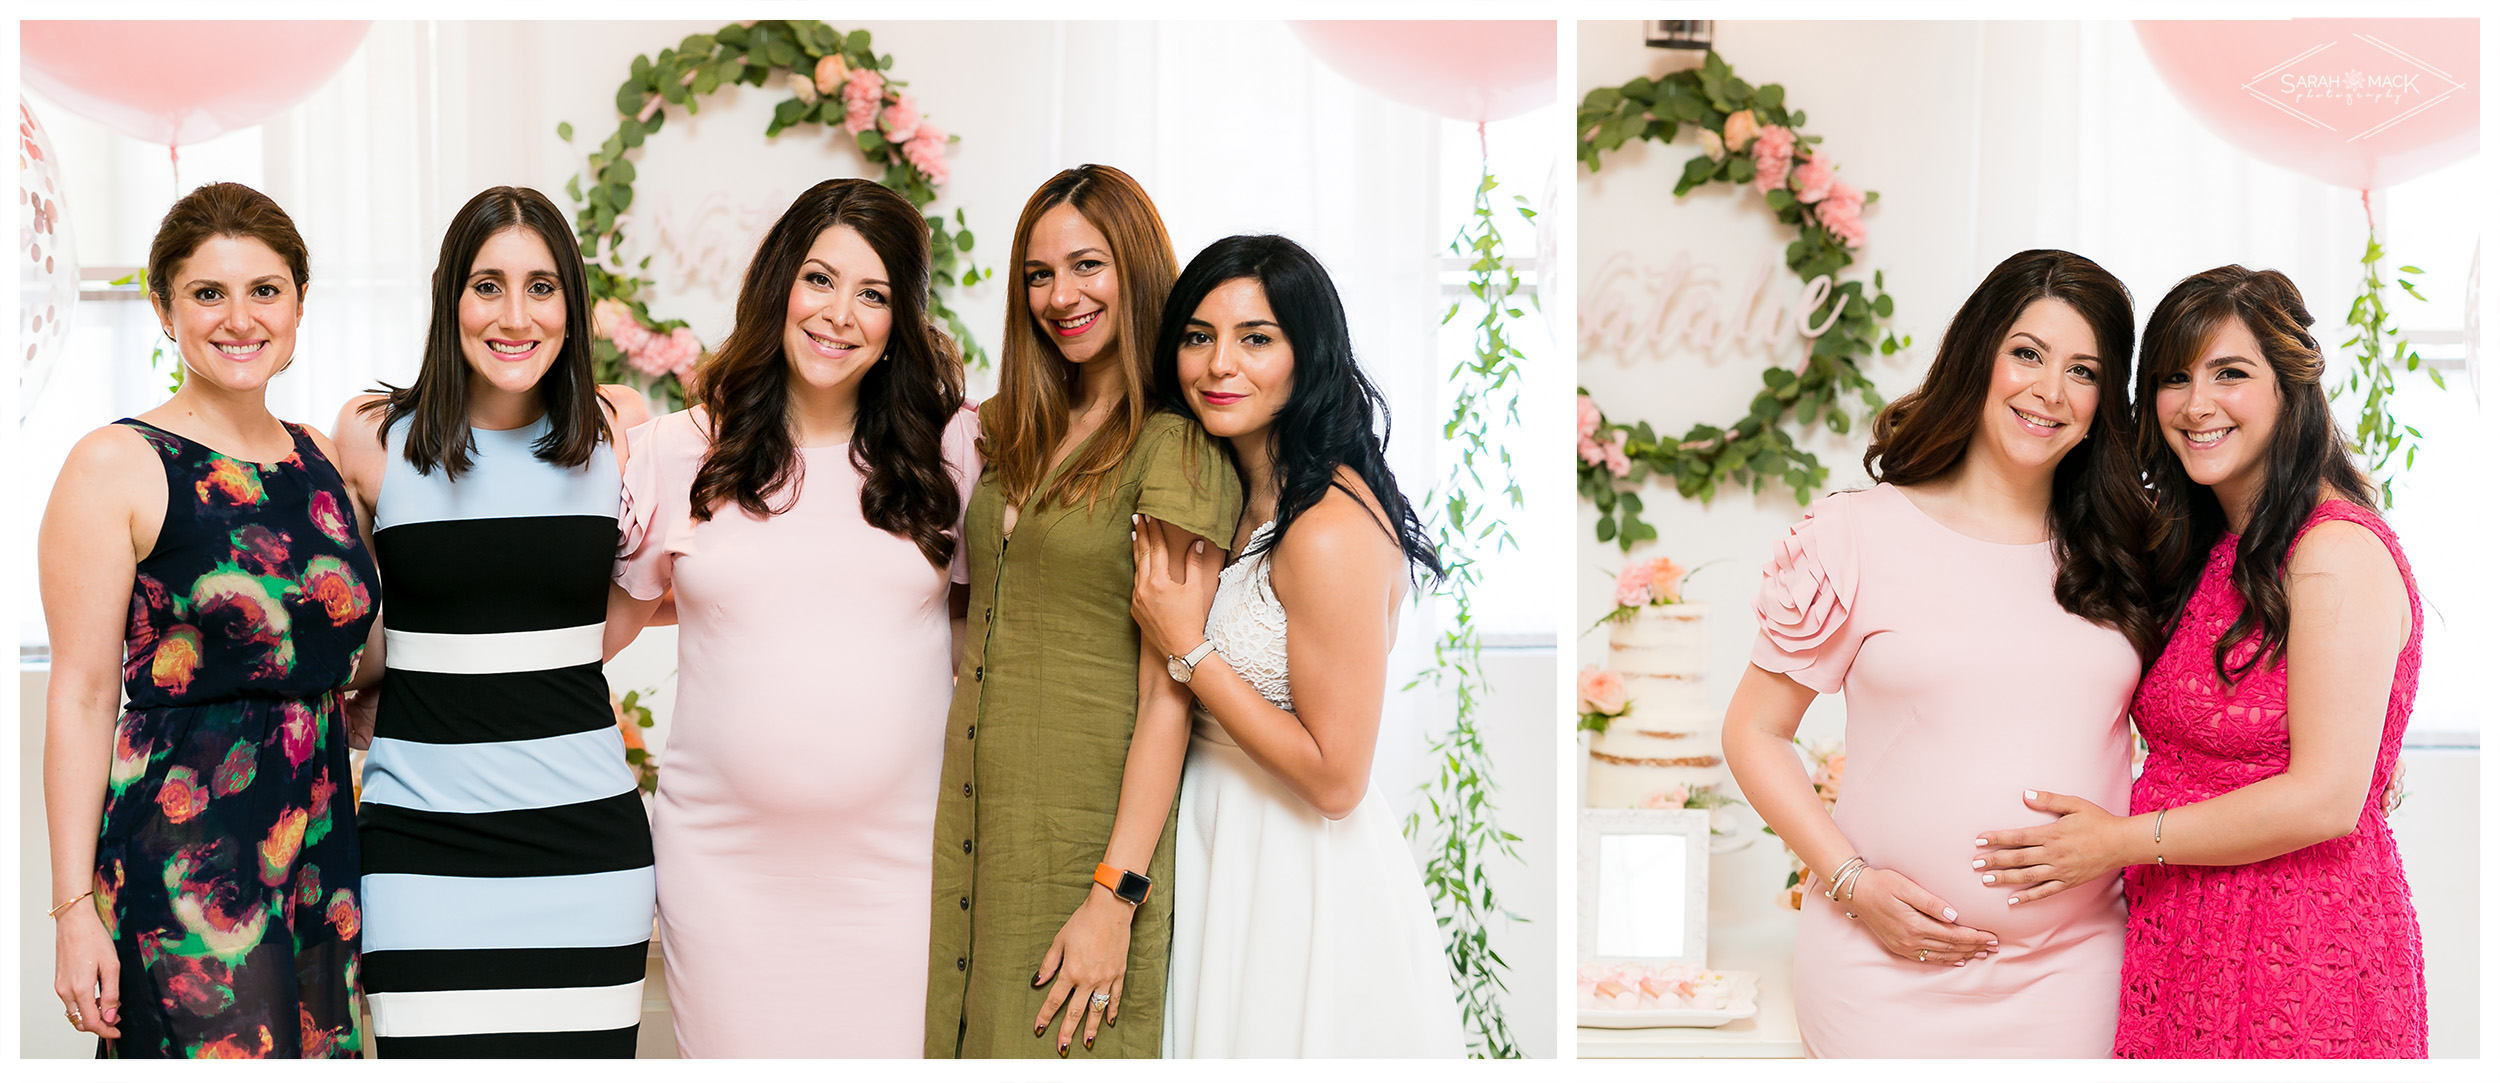 M-Fig-and-Olive-Newport-Beach-Baby-Shower-Photography-13.jpg